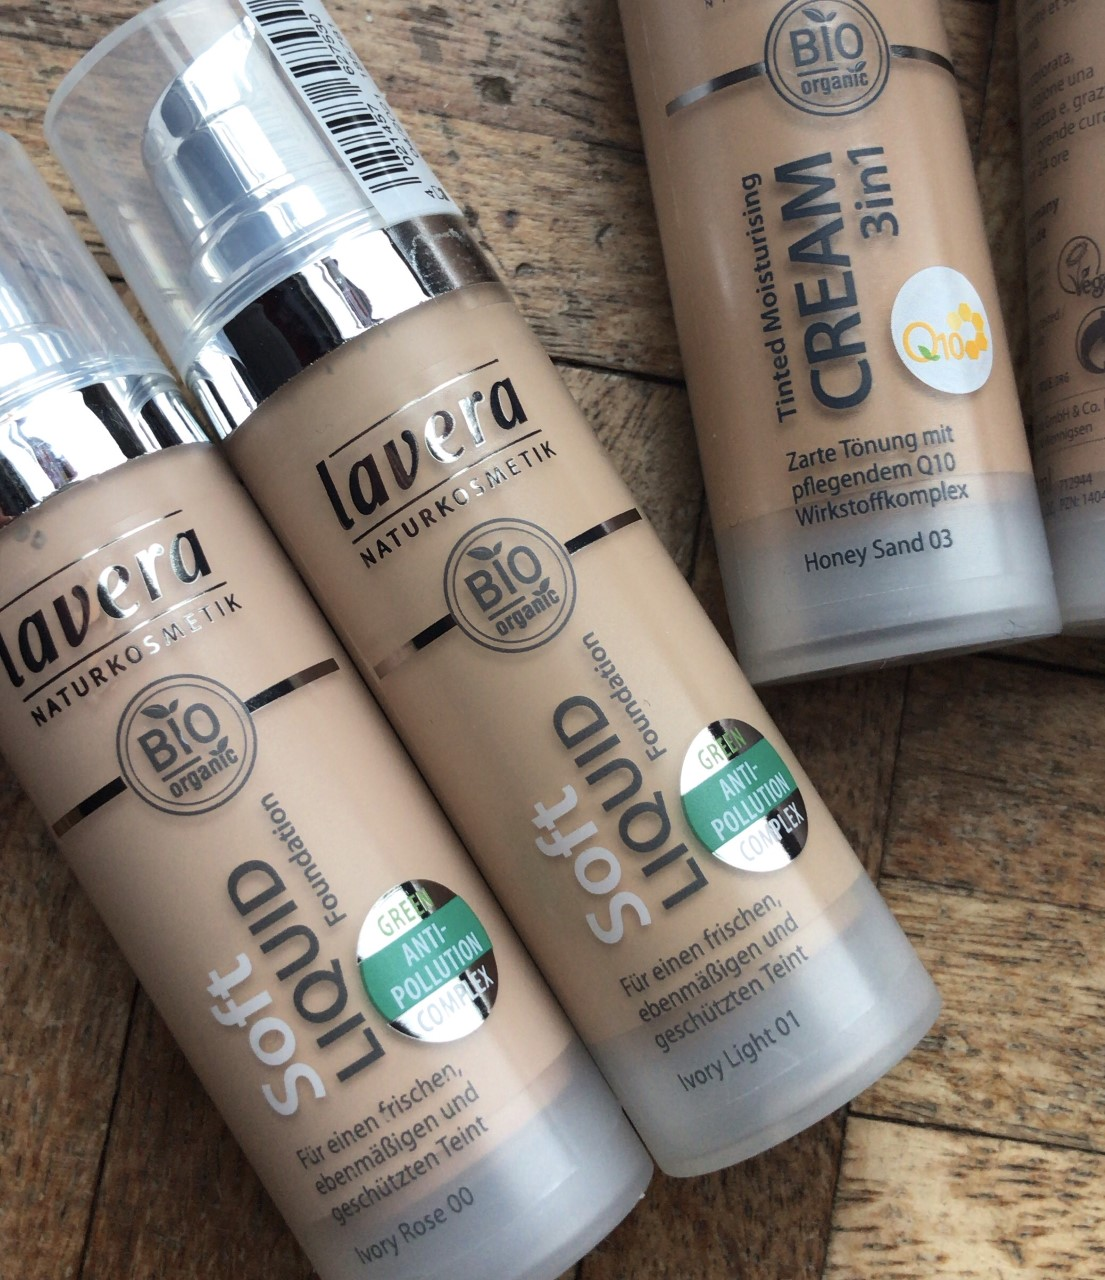 New Lavera Foundations..